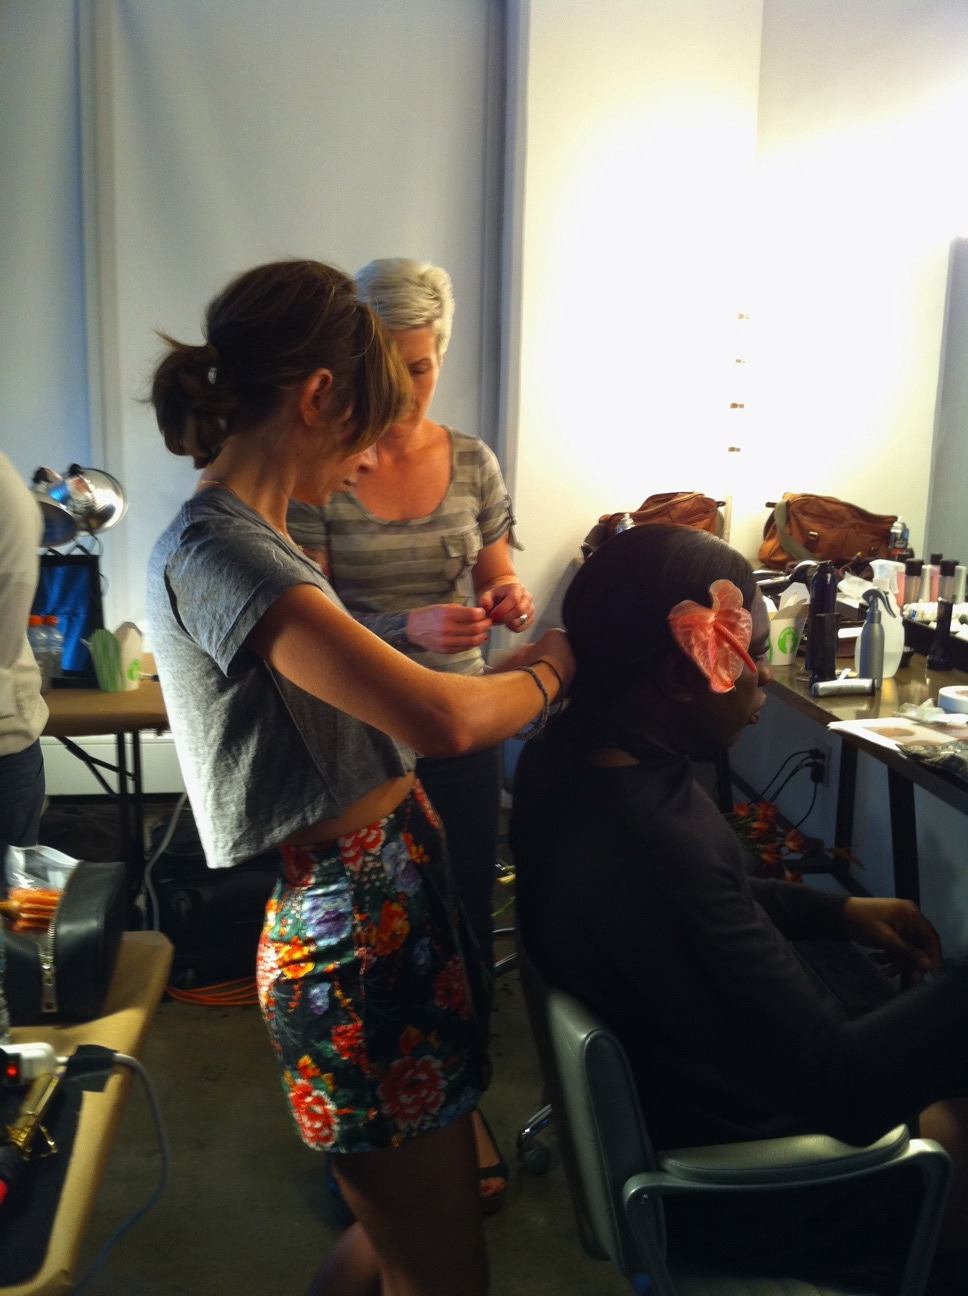 Lead stylist Ramona Eschbach styles a perfomance artist who was providing entertainment at the show